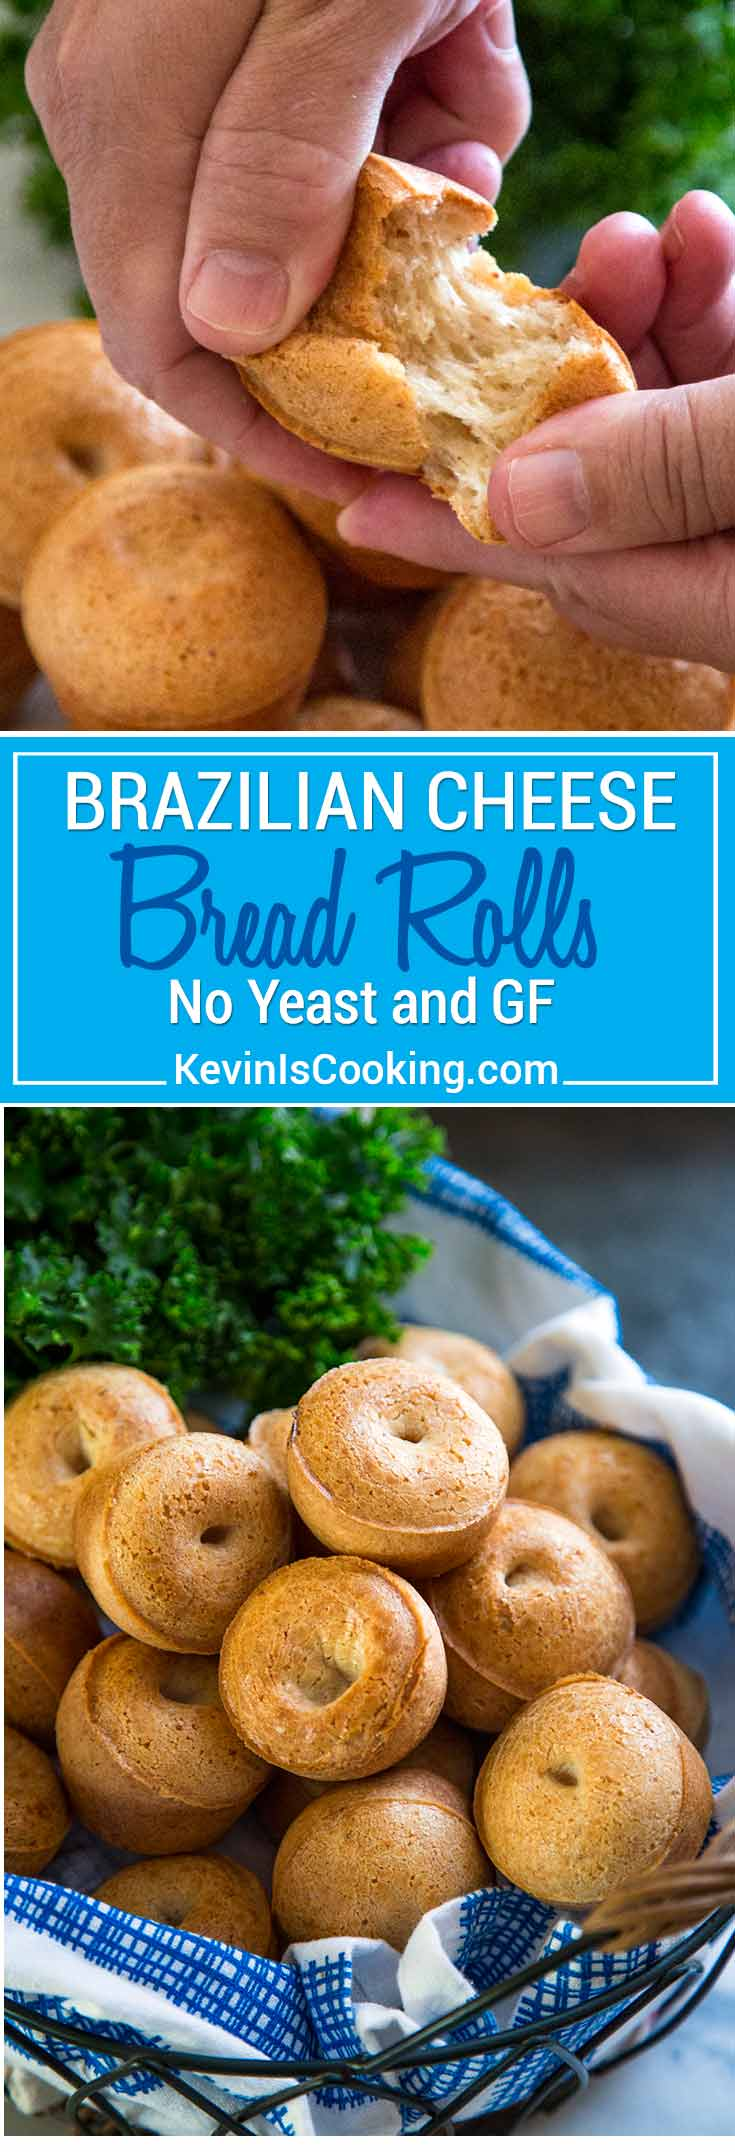 Super easy to make, no yeast involved and they're GF for my friends who can't do wheat. These Brazilian Cheese Bread Rolls are my new addiction. So easy!